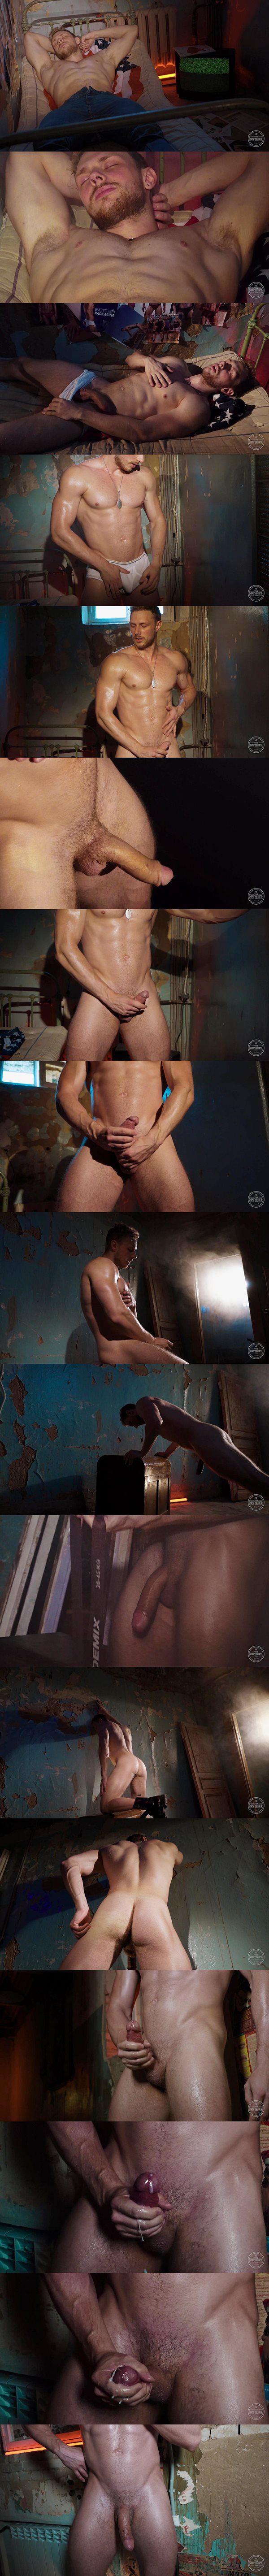 Ripped, hung Russian straight beefcake Fedor works out naked before he strokes a creamy load out of his hard cock in Big Dick Russian In the Zone at Theguysite